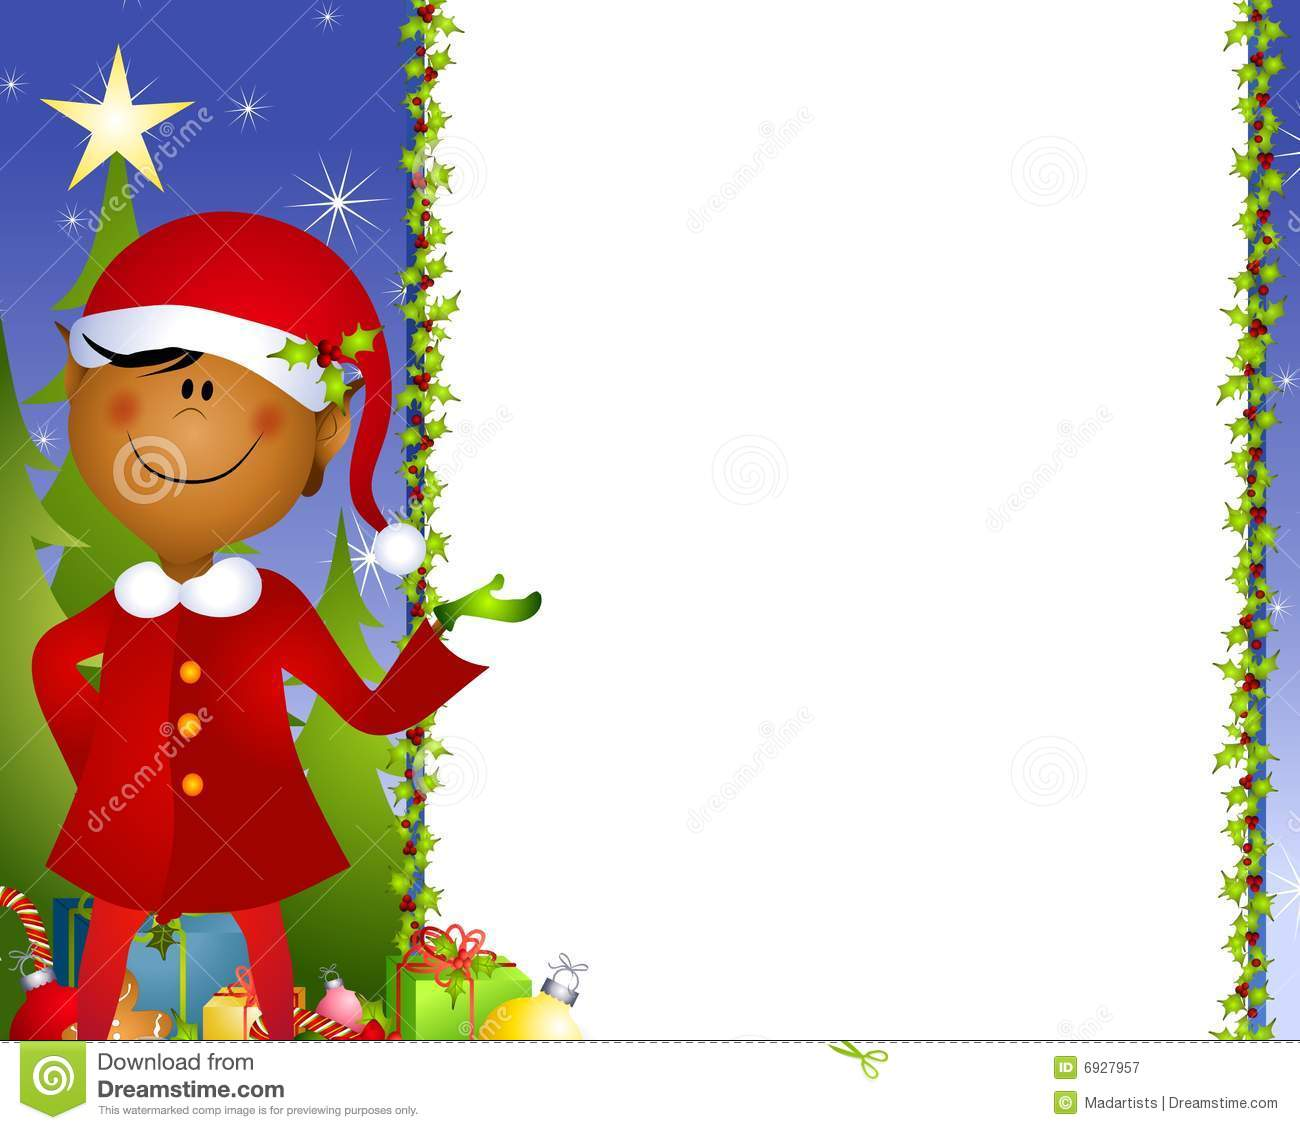 Xmas Elf Background 2 Royalty Free Stock Photography   Image  6927957